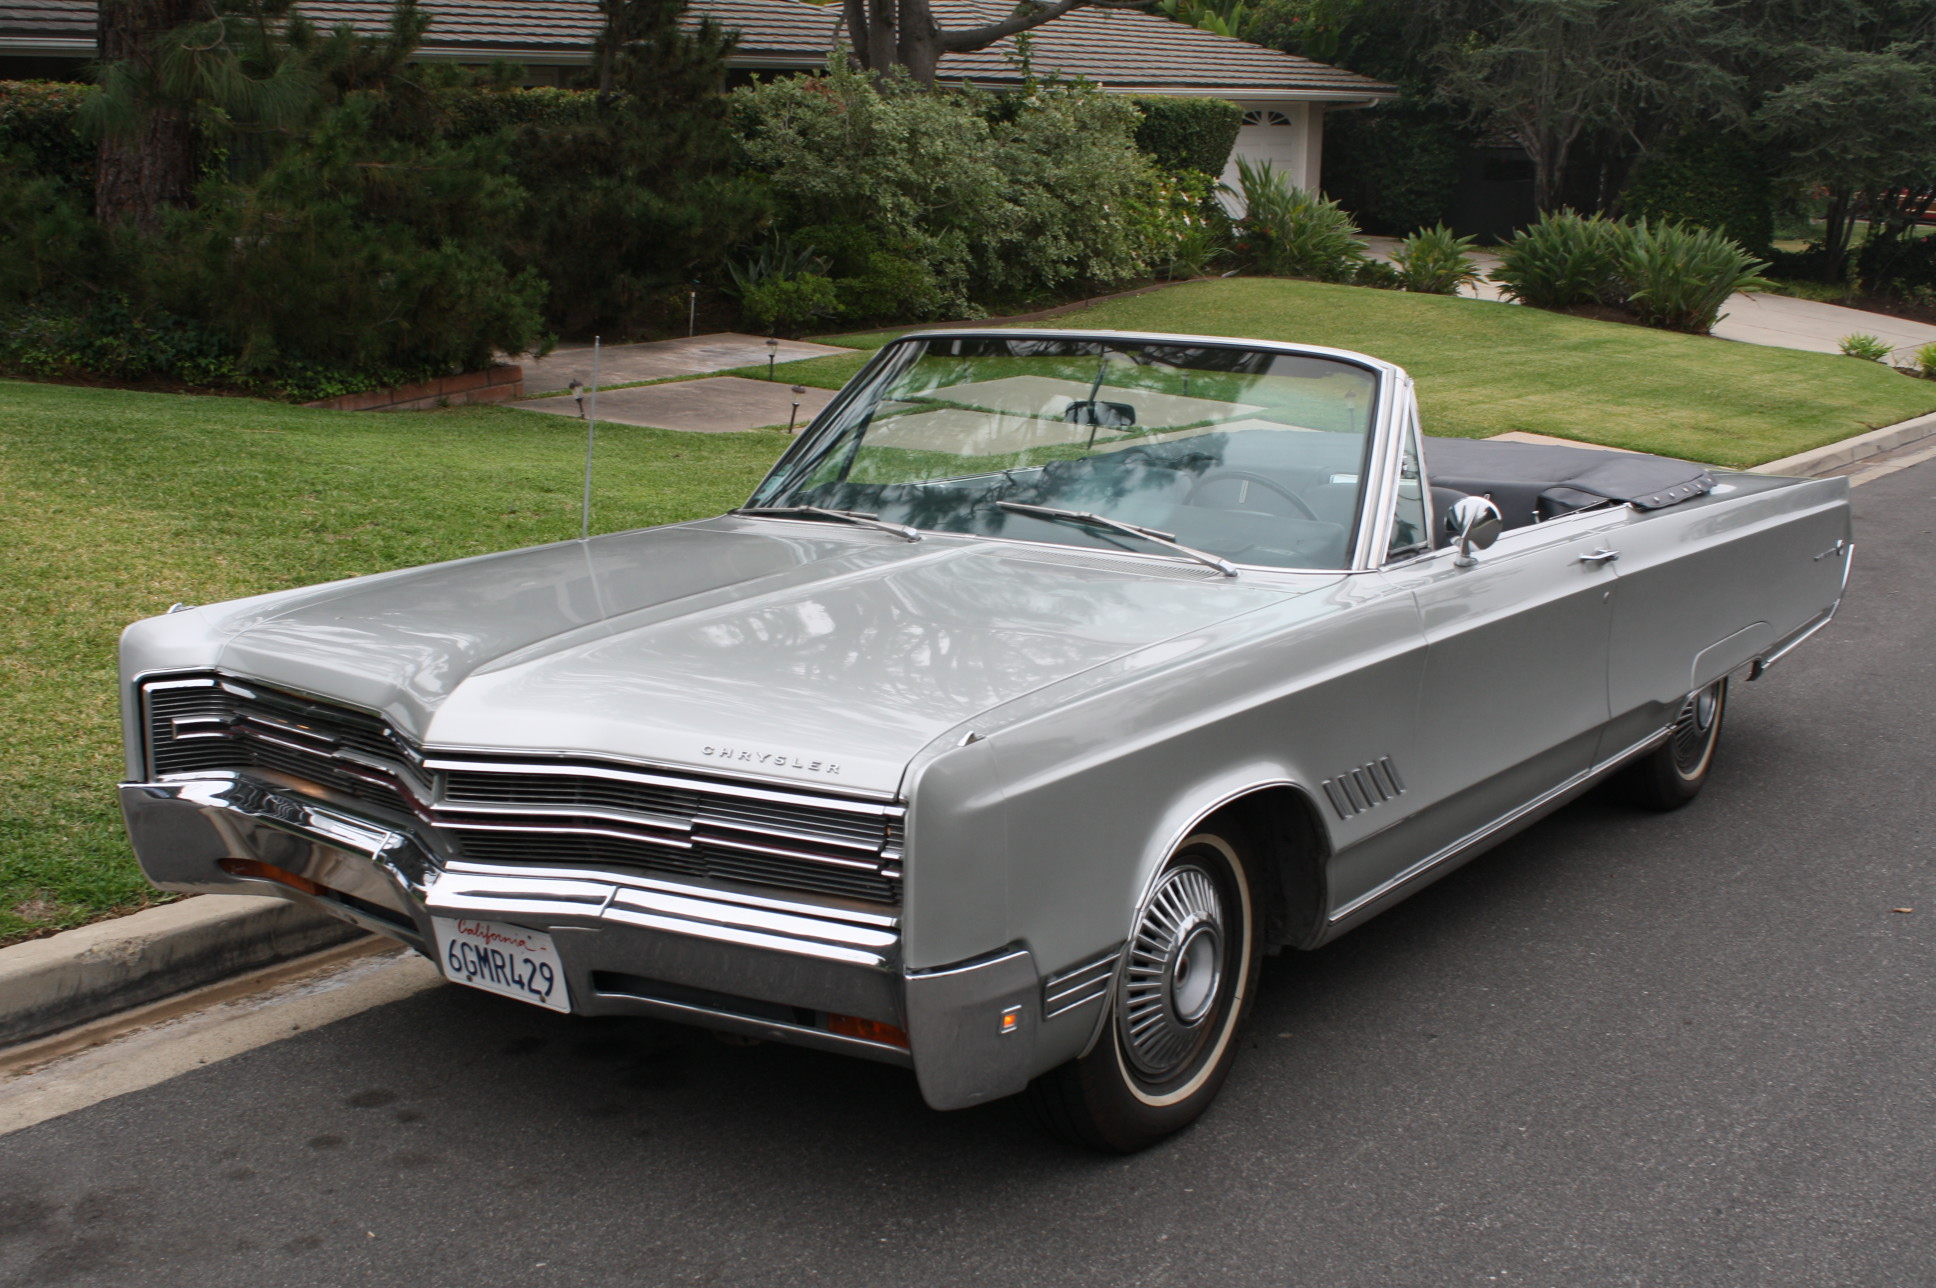 1968 Chrysler 300 Convertible The Vault Classic Cars 1970 Impala For Sale Craigslist